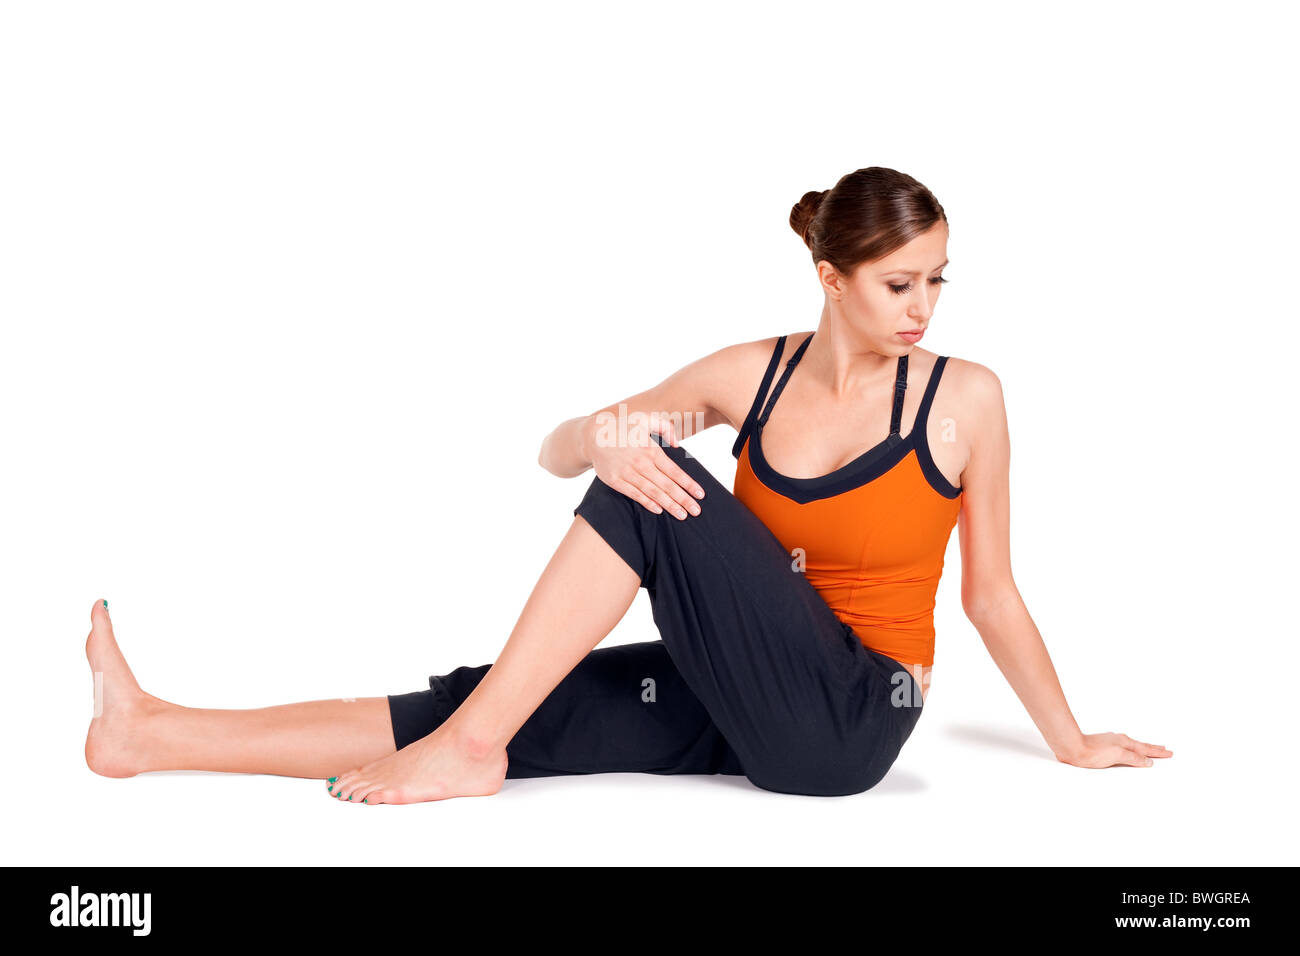 Young Fit Woman Doing First Stage Of Yoga Exercise Called Sage Pose C Sanskrit Name Marichyasana